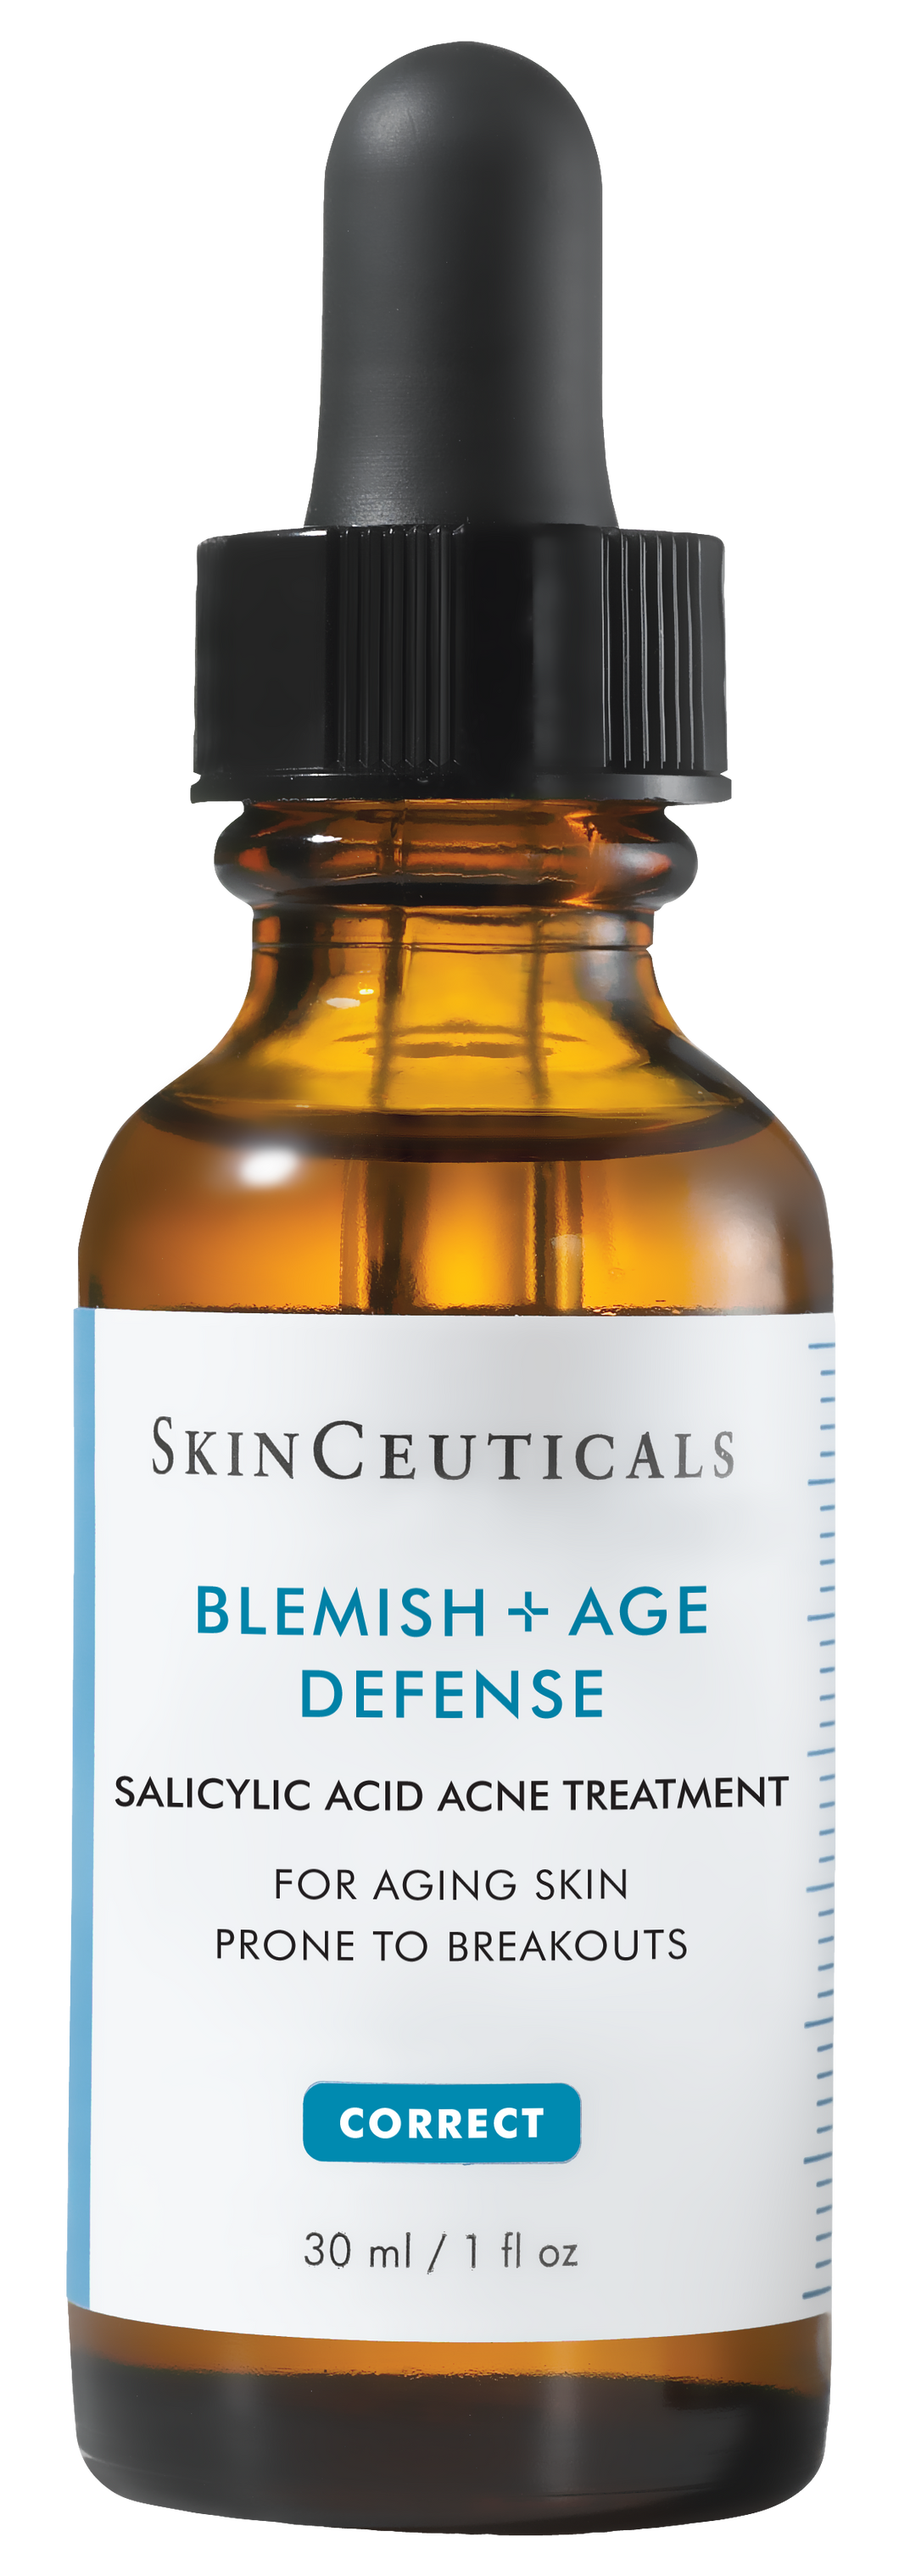 Blemish + Age Defense - RSVP Beauty Clinic